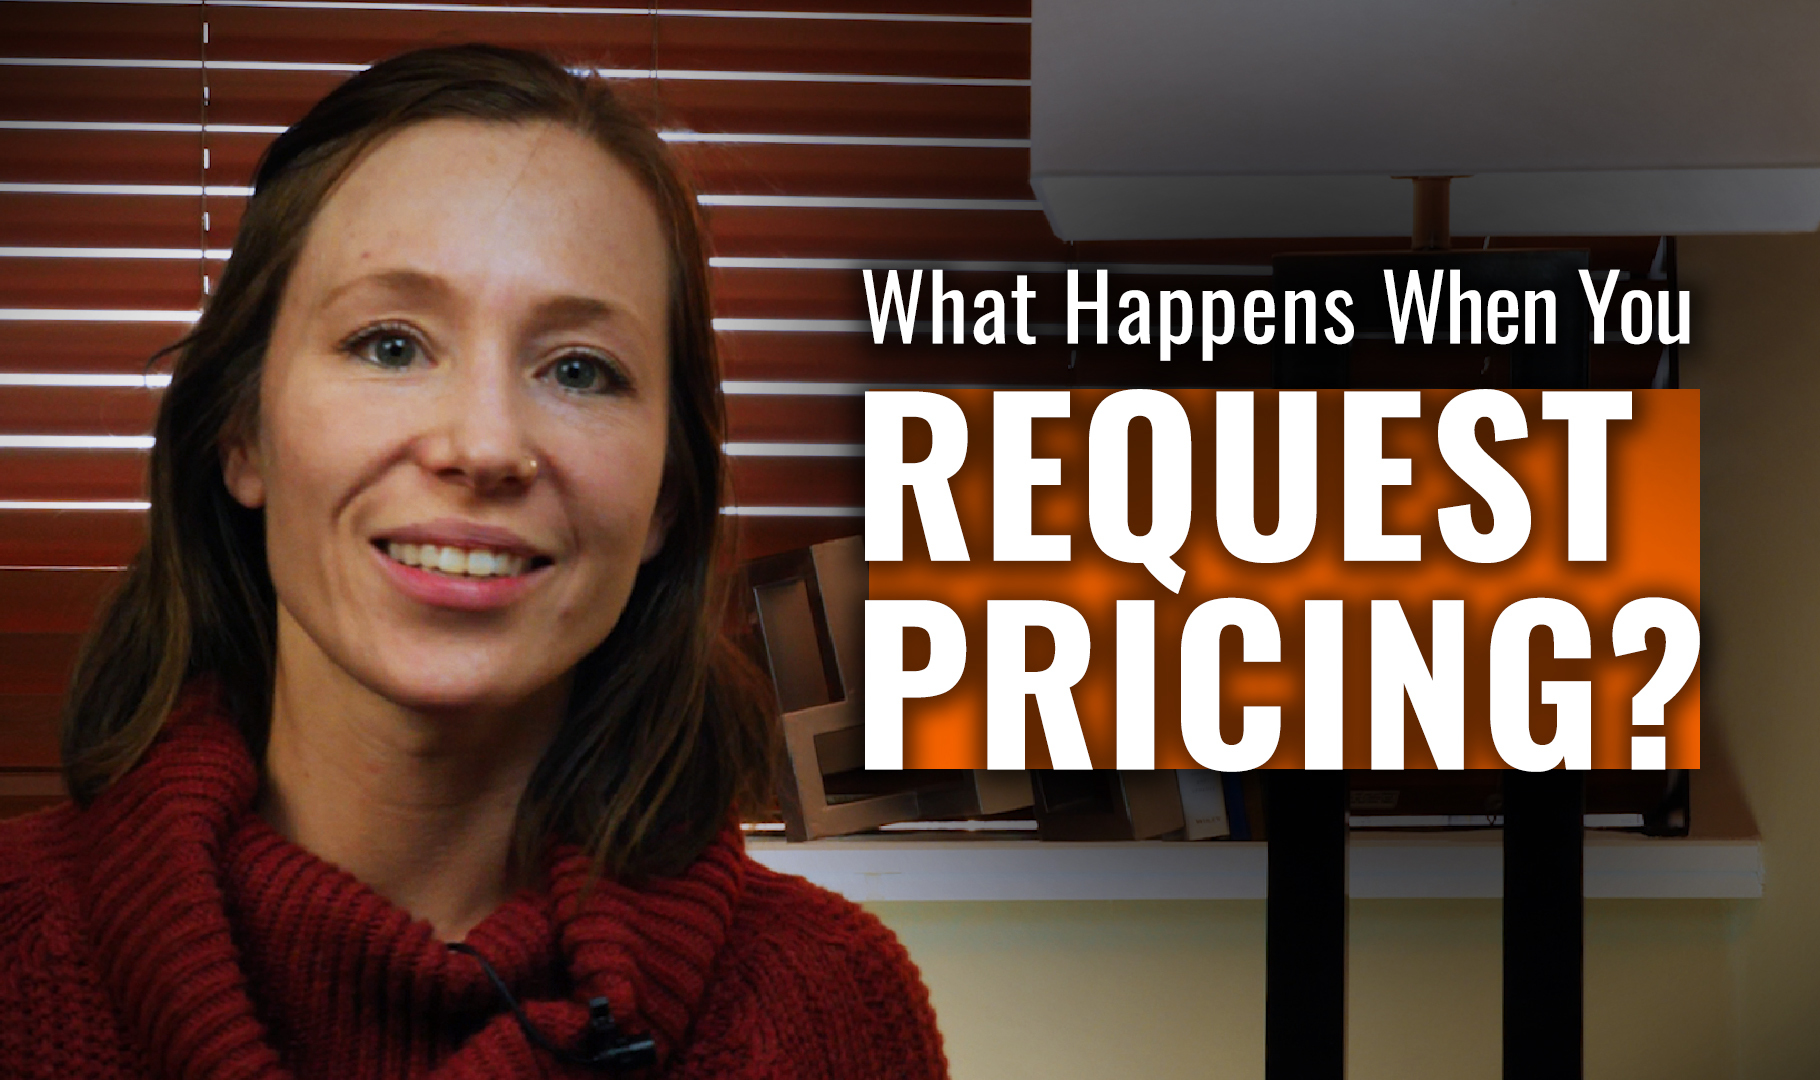 What happens when you request pricing?